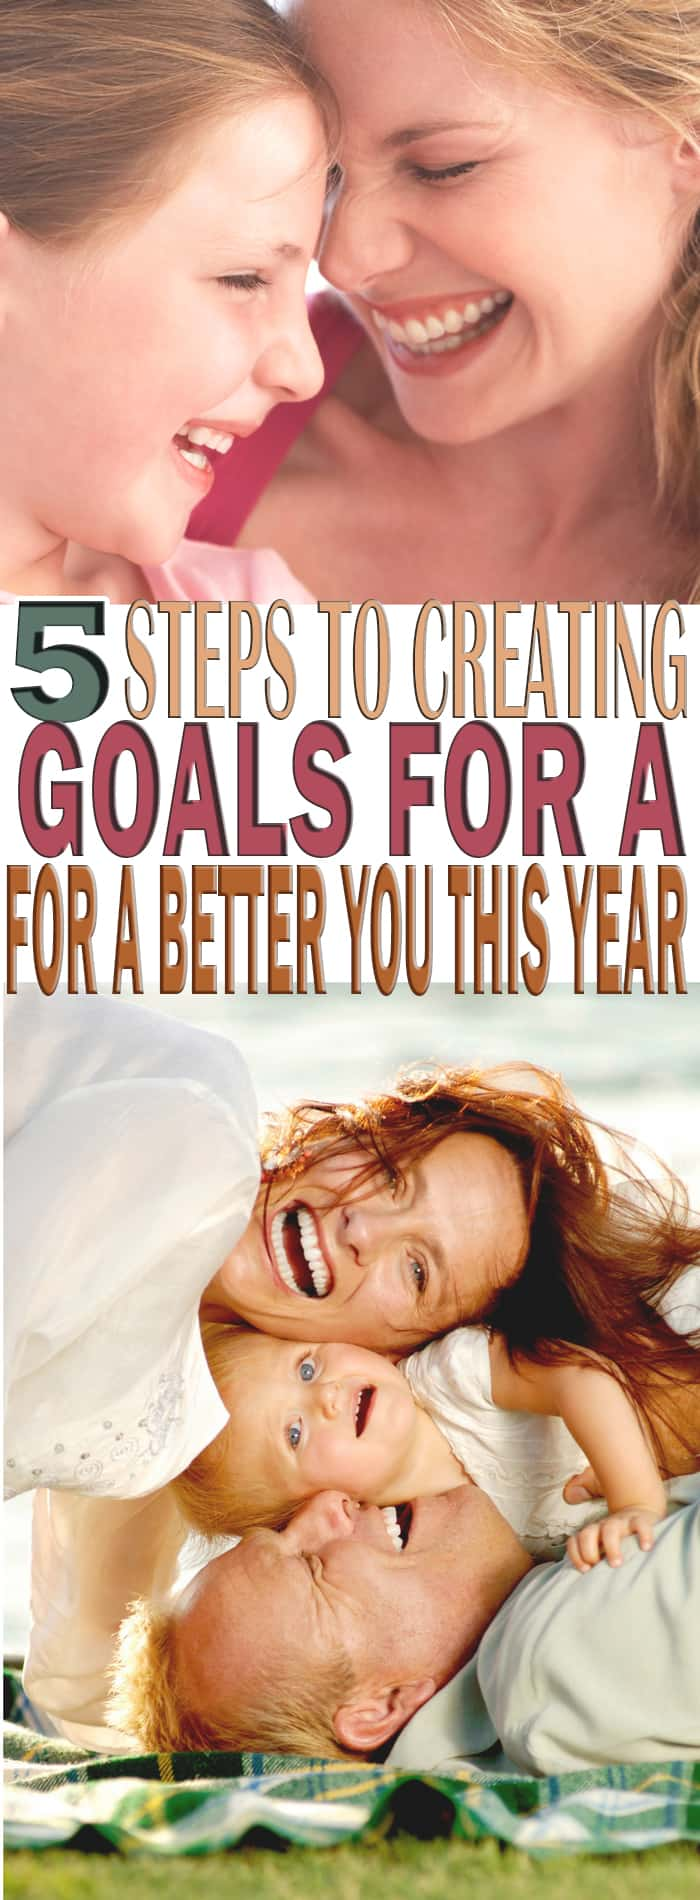 What are you doing this year to better yourself? What are your goals? Here are some steps to creating goals for a better you this year that will work!